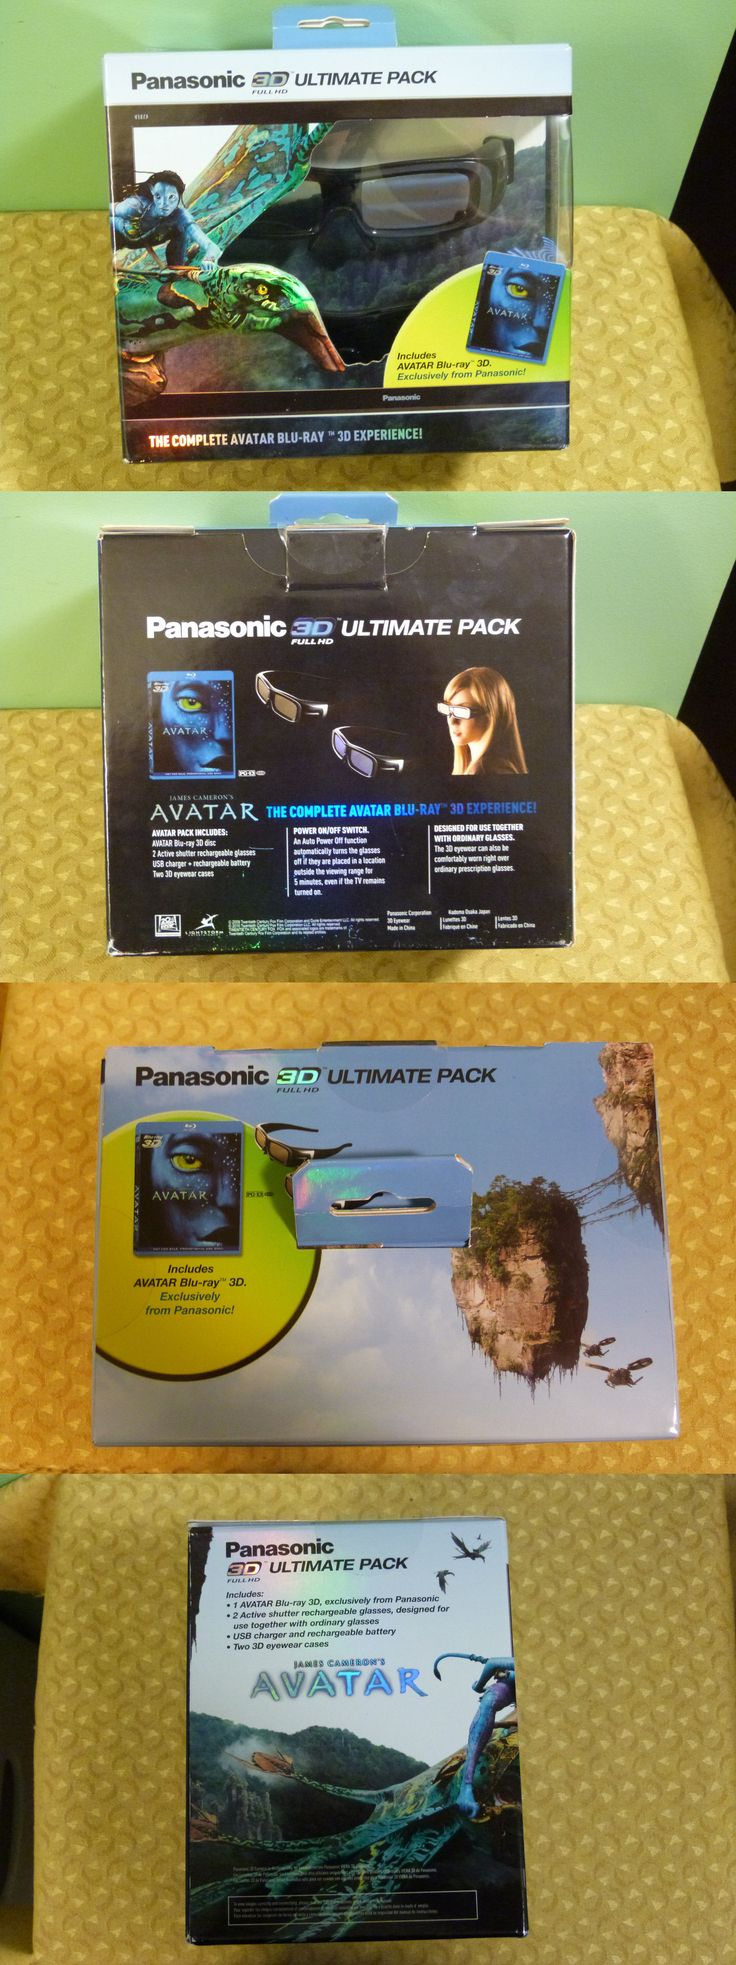 3D TV Glasses and Accessories: Rare Panasonic 3D Ultimate Pack - Avatar 3D Blu-Ray And 2 3D Glasses - New Sealed BUY IT NOW ONLY: $129.99